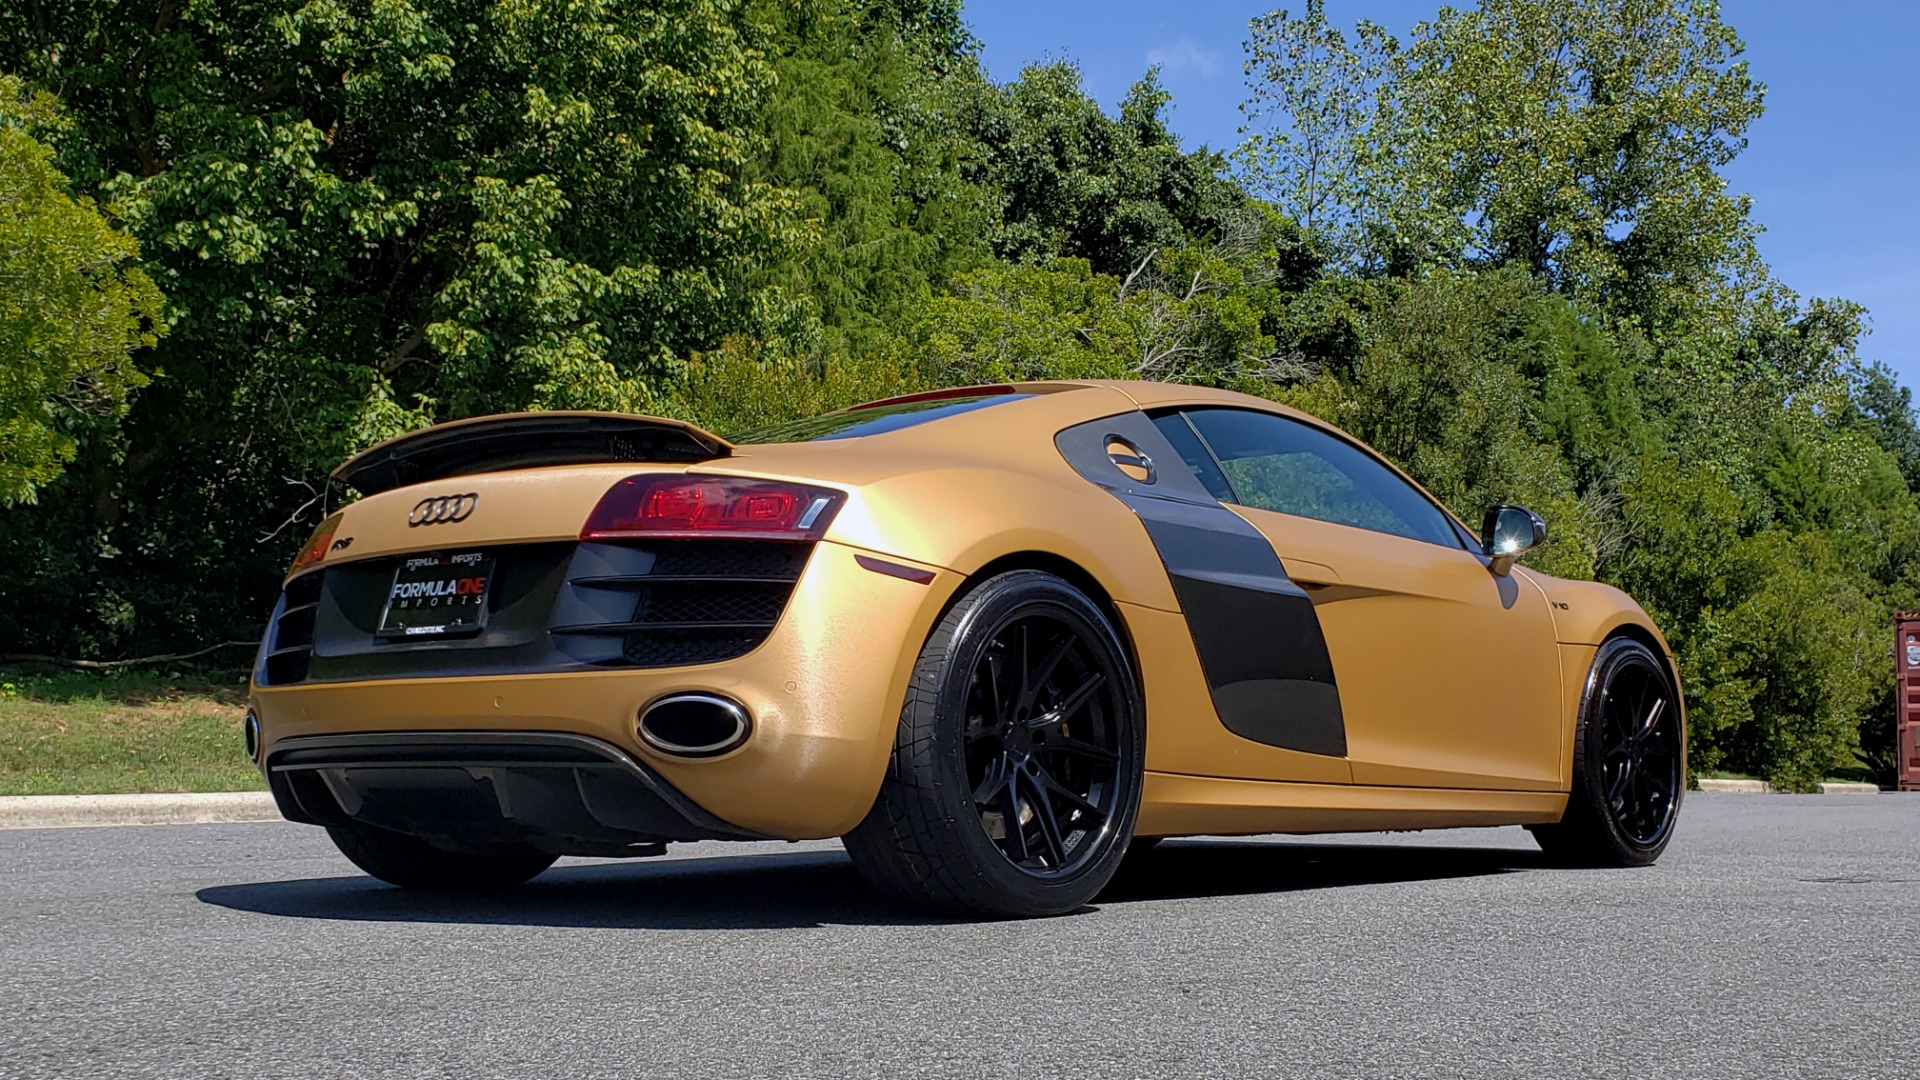 Used 2012 Audi R8 V10 5.2L / CUST WRAP BRUSHED BRONZE / NAV / B&O SOUND / CUST 19IN WHLS for sale $79,999 at Formula Imports in Charlotte NC 28227 8